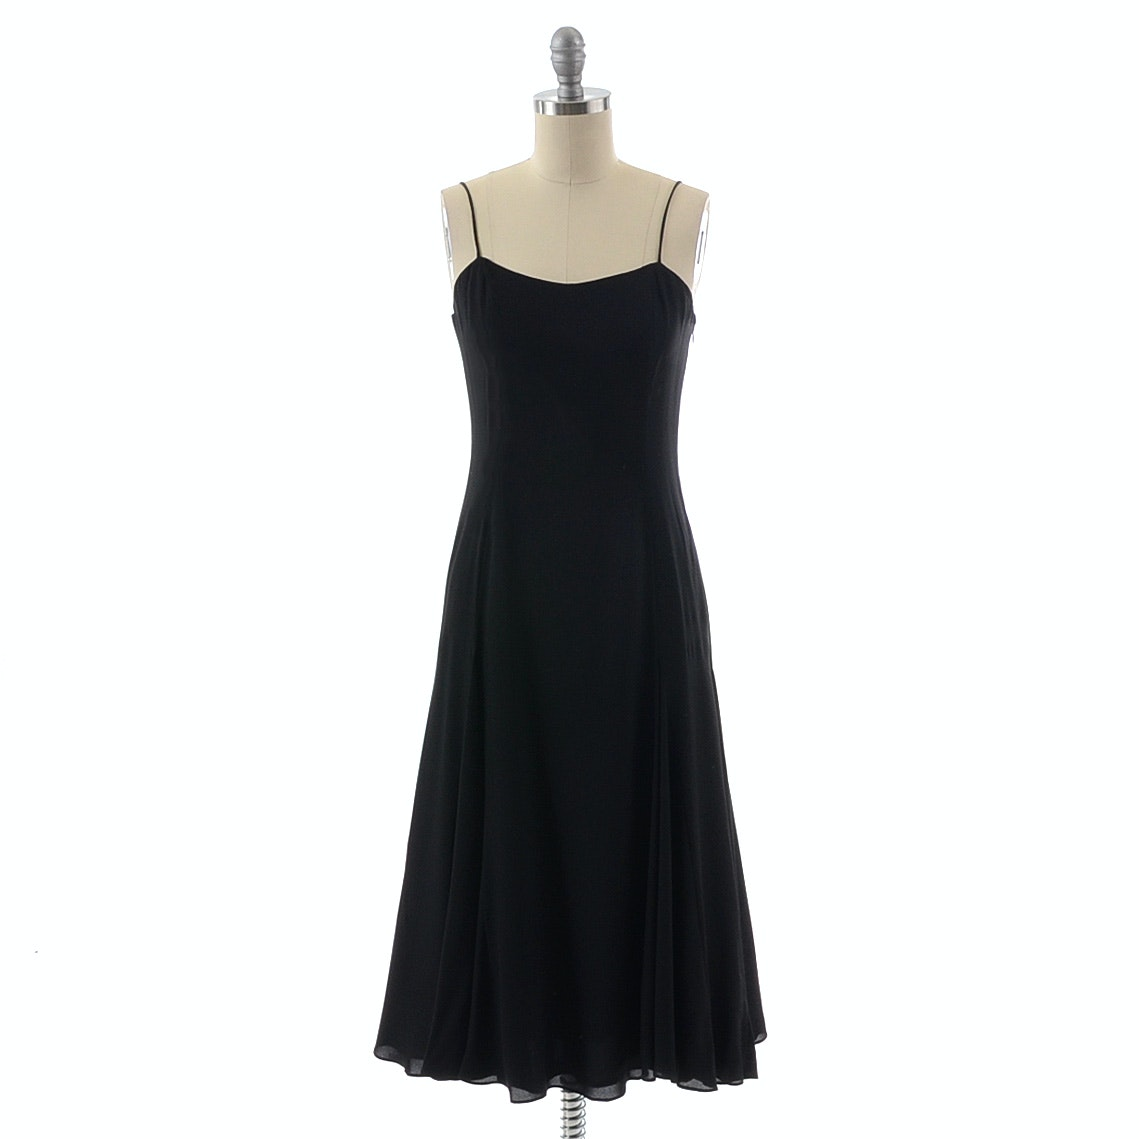 Sleeveless Black Silk Dress by Jade with Flared Hemline